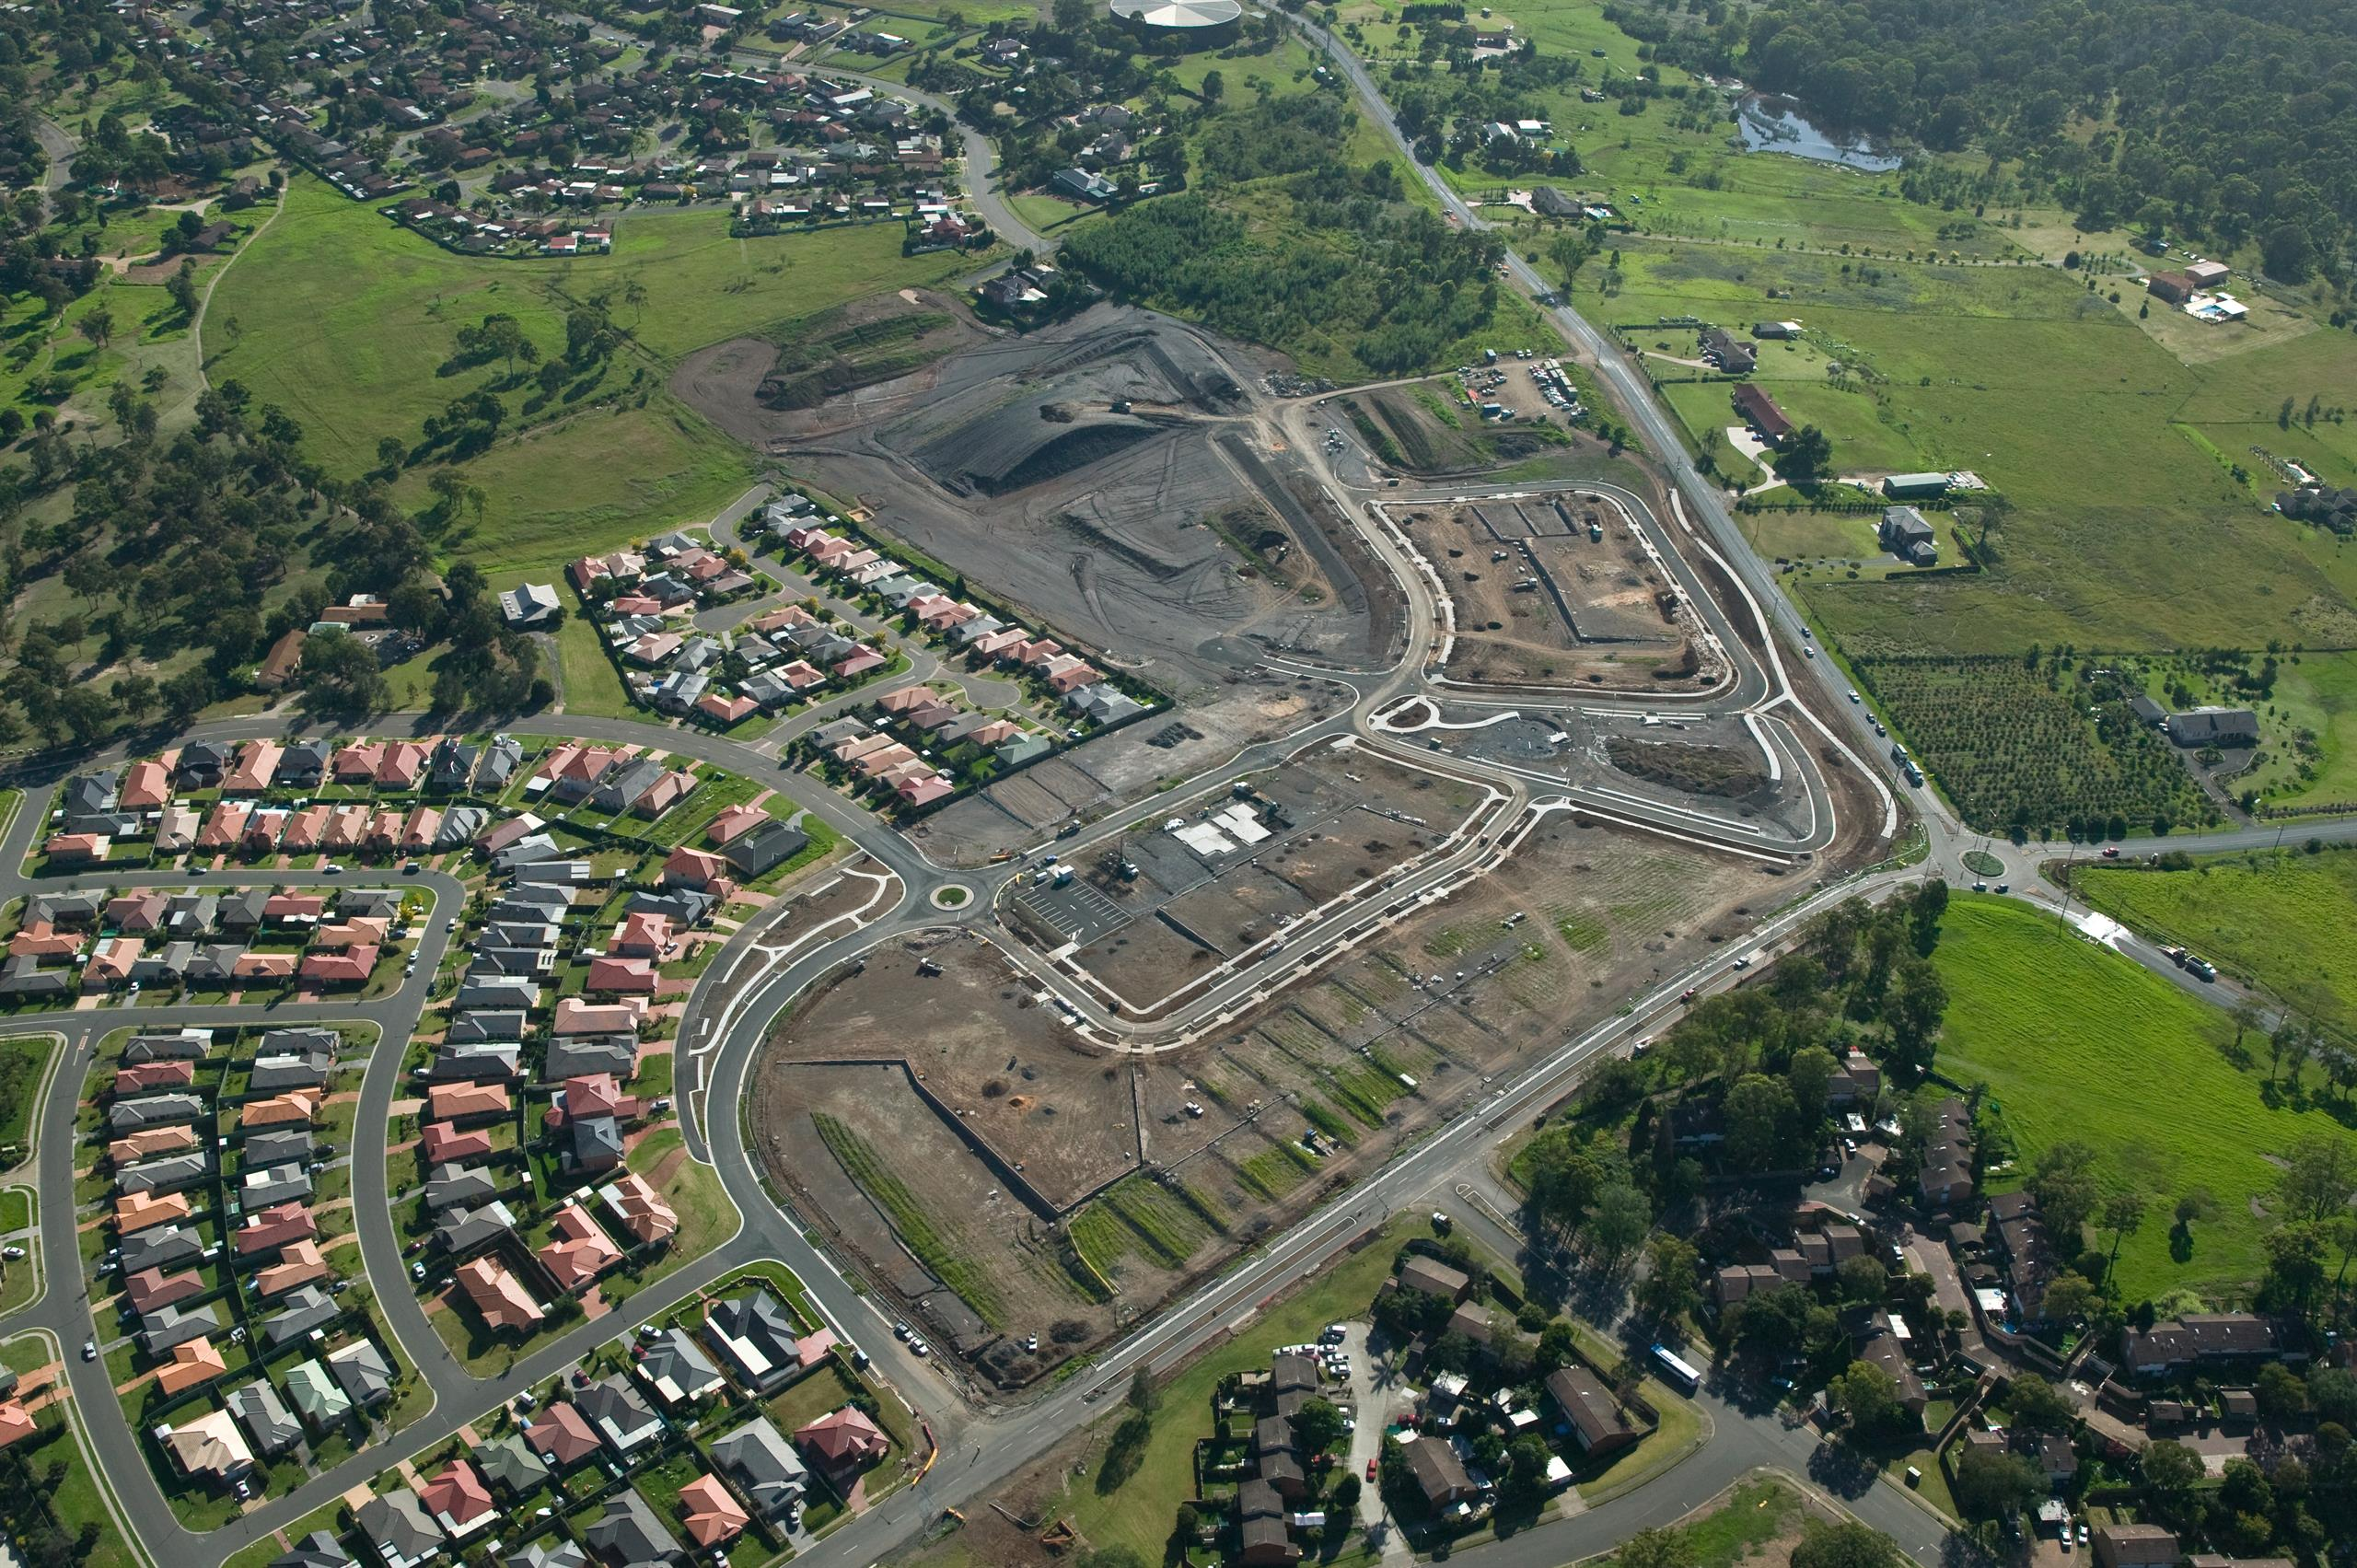 aerial view of Minto suburb in Sydney